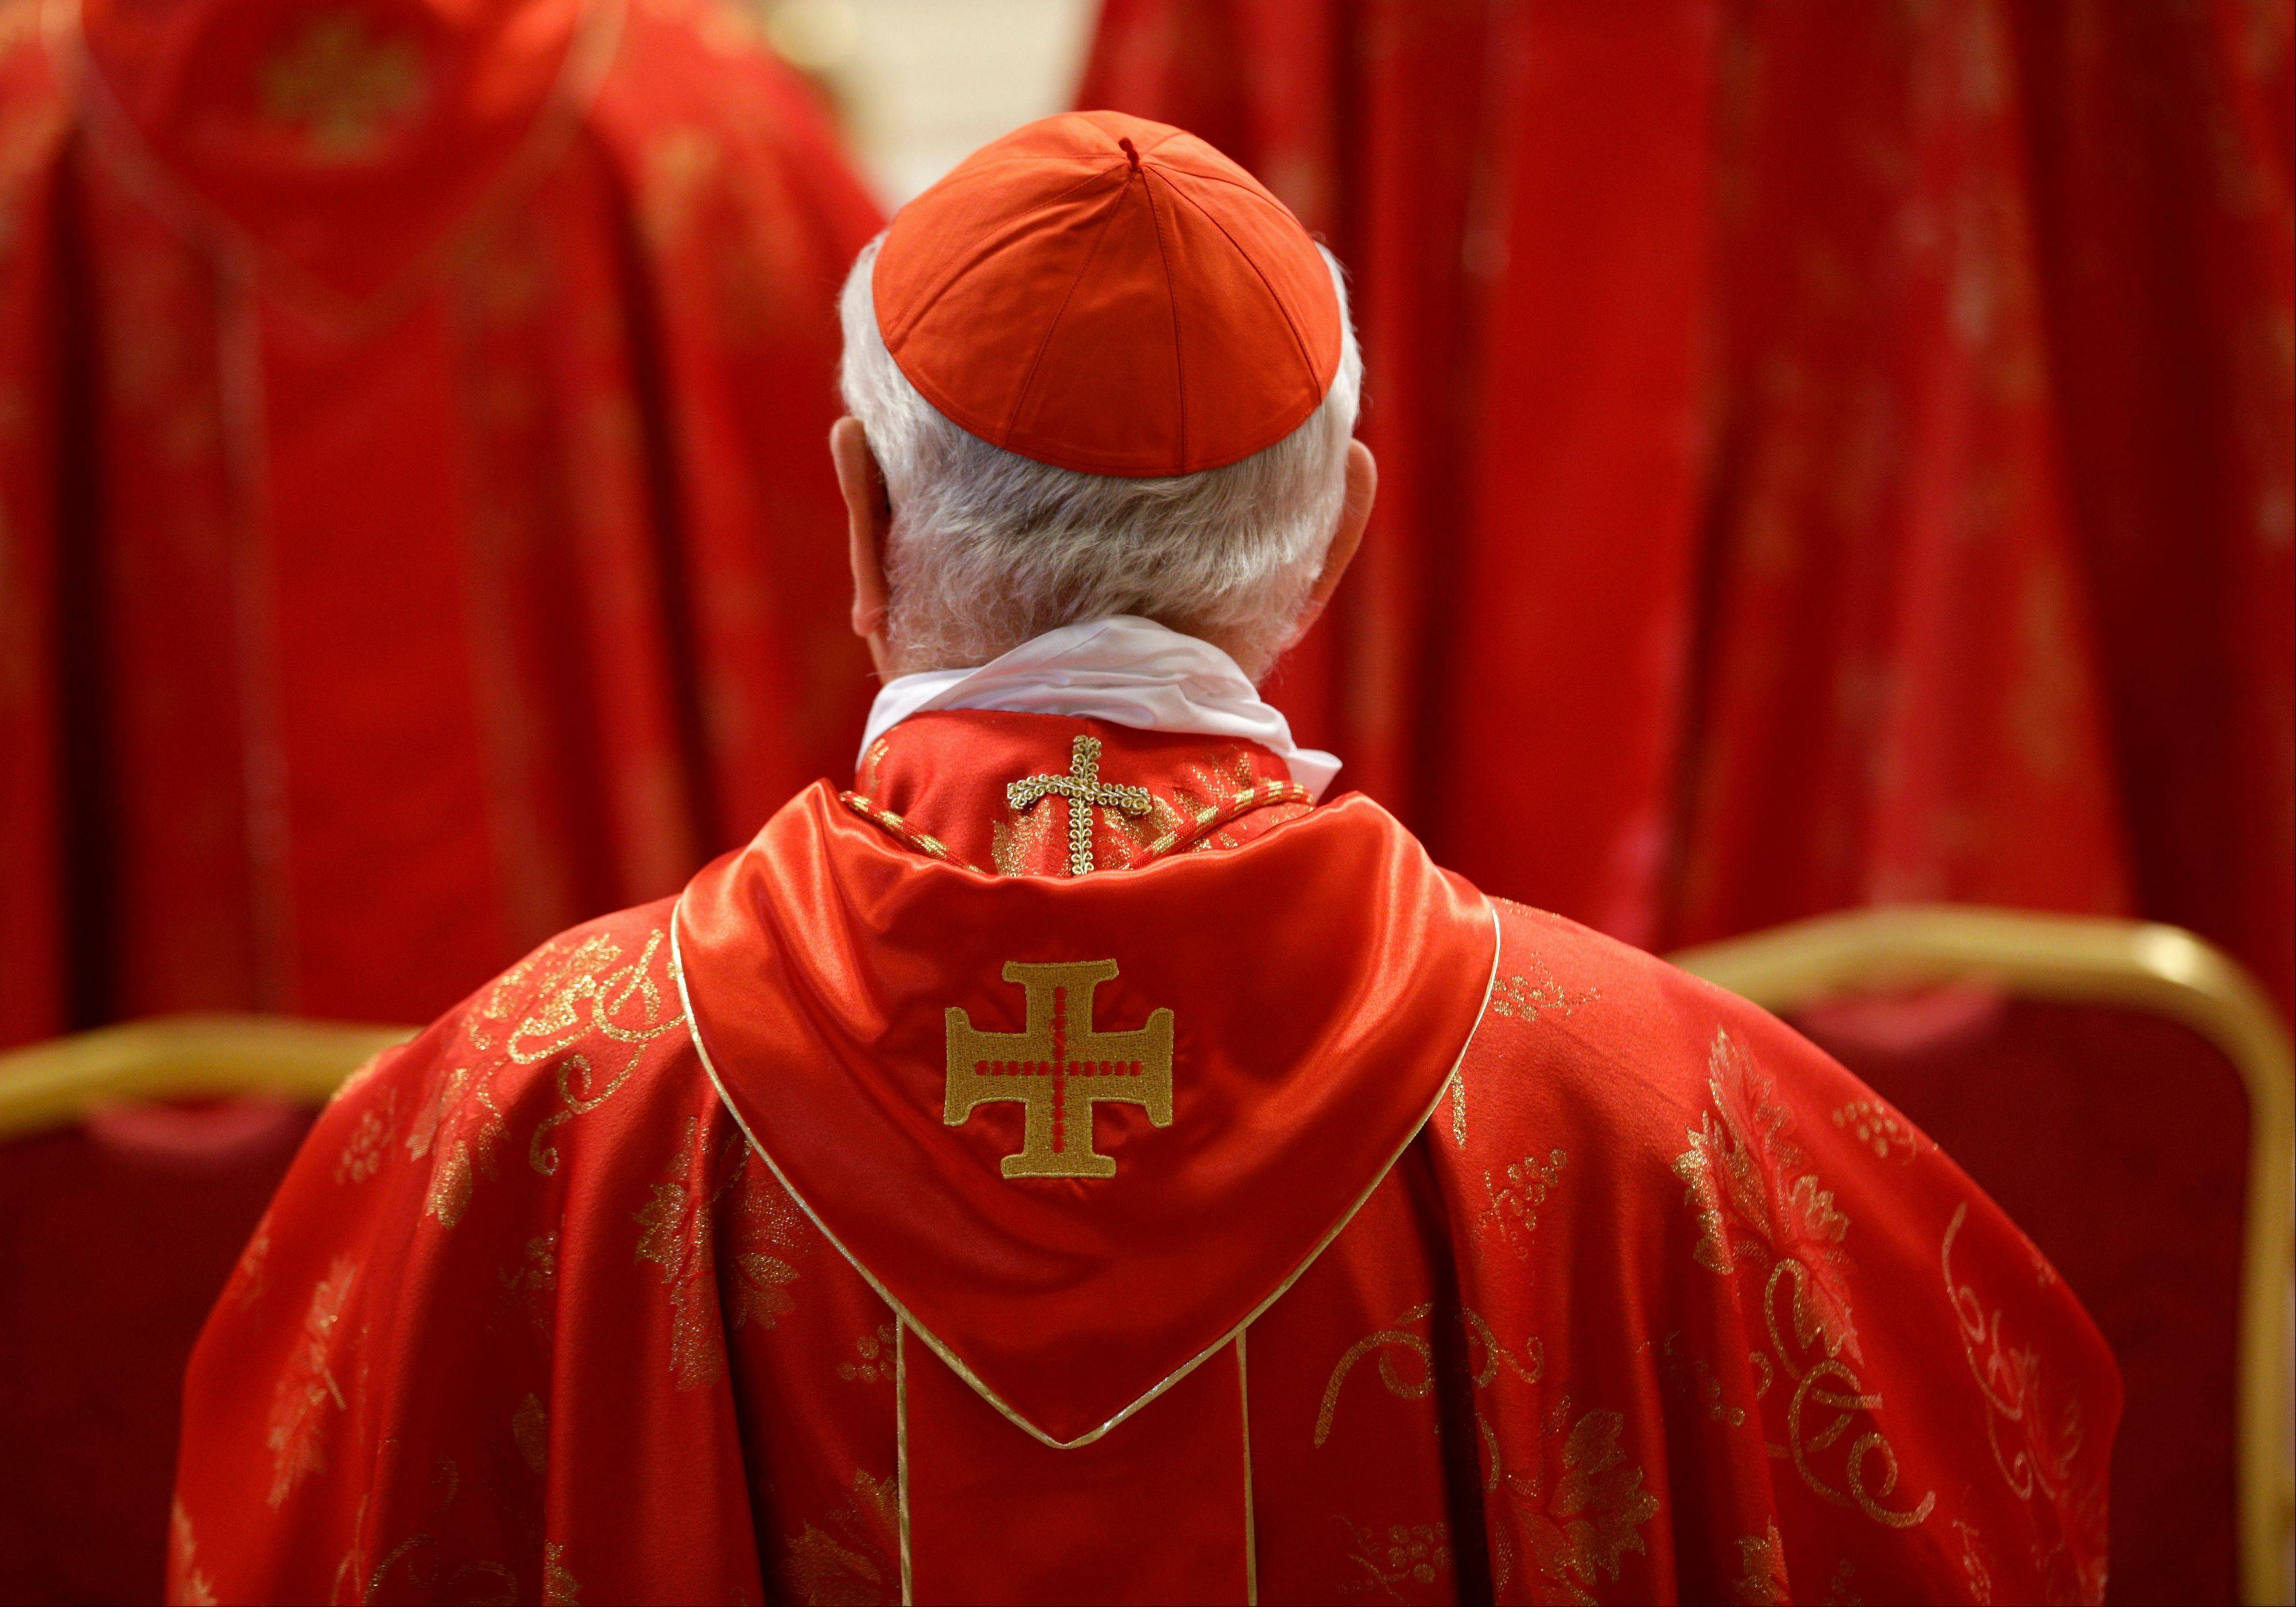 A cardinal attends a Mass for the election of a new pope celebrated inside St. Peter's Basilica, at the Vatican, Tuesday, March 12, 2013.